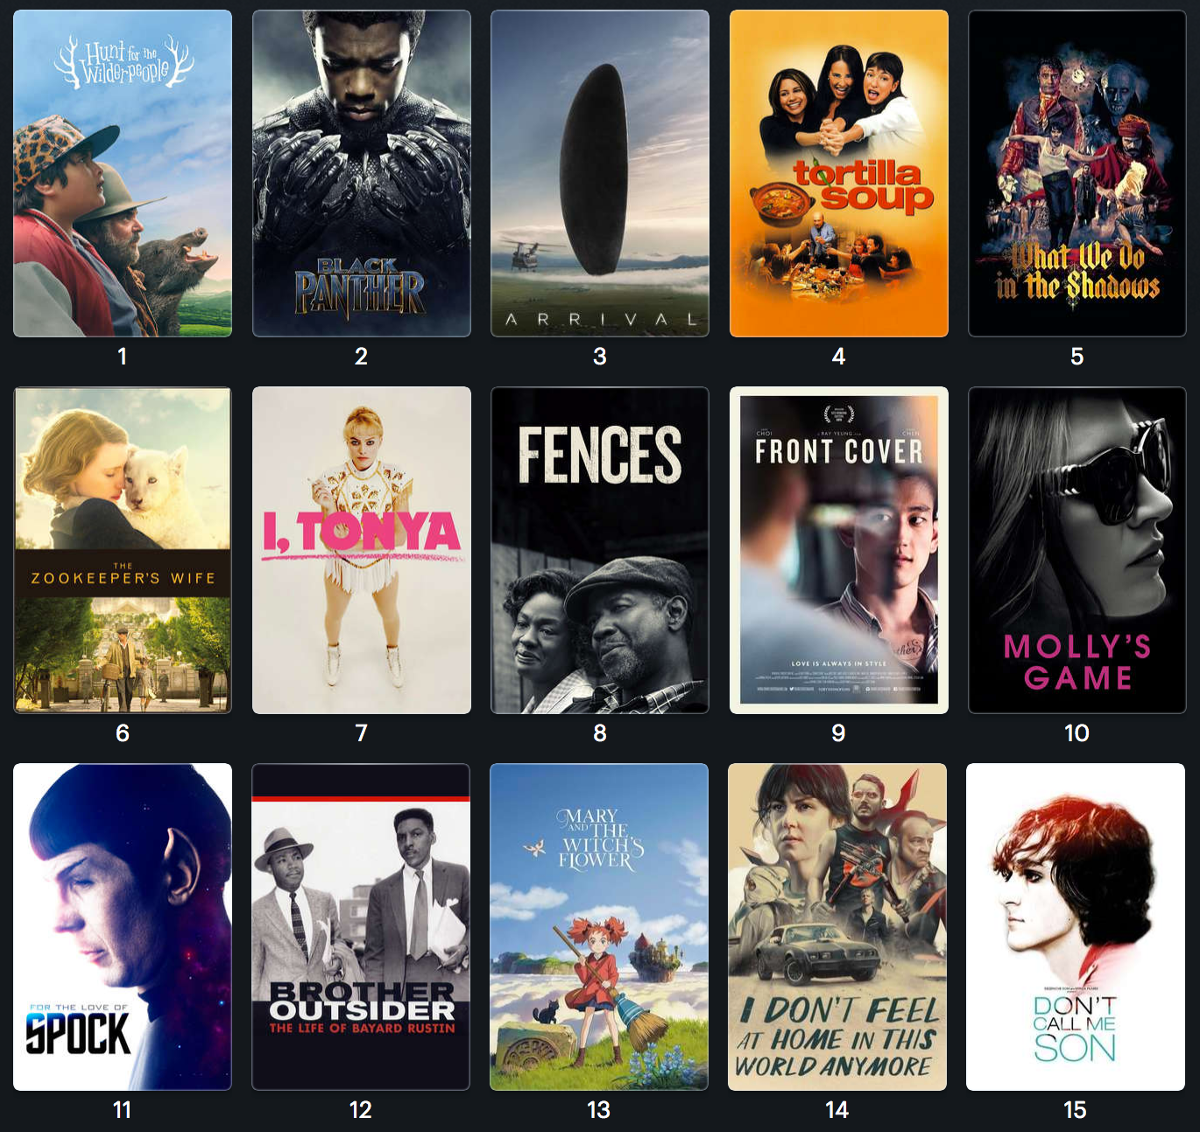 15 films - Hunt for the Wilder People, Black Panther, Arrival, Tortilla Soup, What We Do in the Shadows, Zookeeper's Wife, I, Tonya, Fences, Front Cover, Molly's Game, For the Love of Spock, Brother Outsider, Mary and the Witche's Flower, I Don't Feel at Home in This World Anymore, and Don't Call Me Son